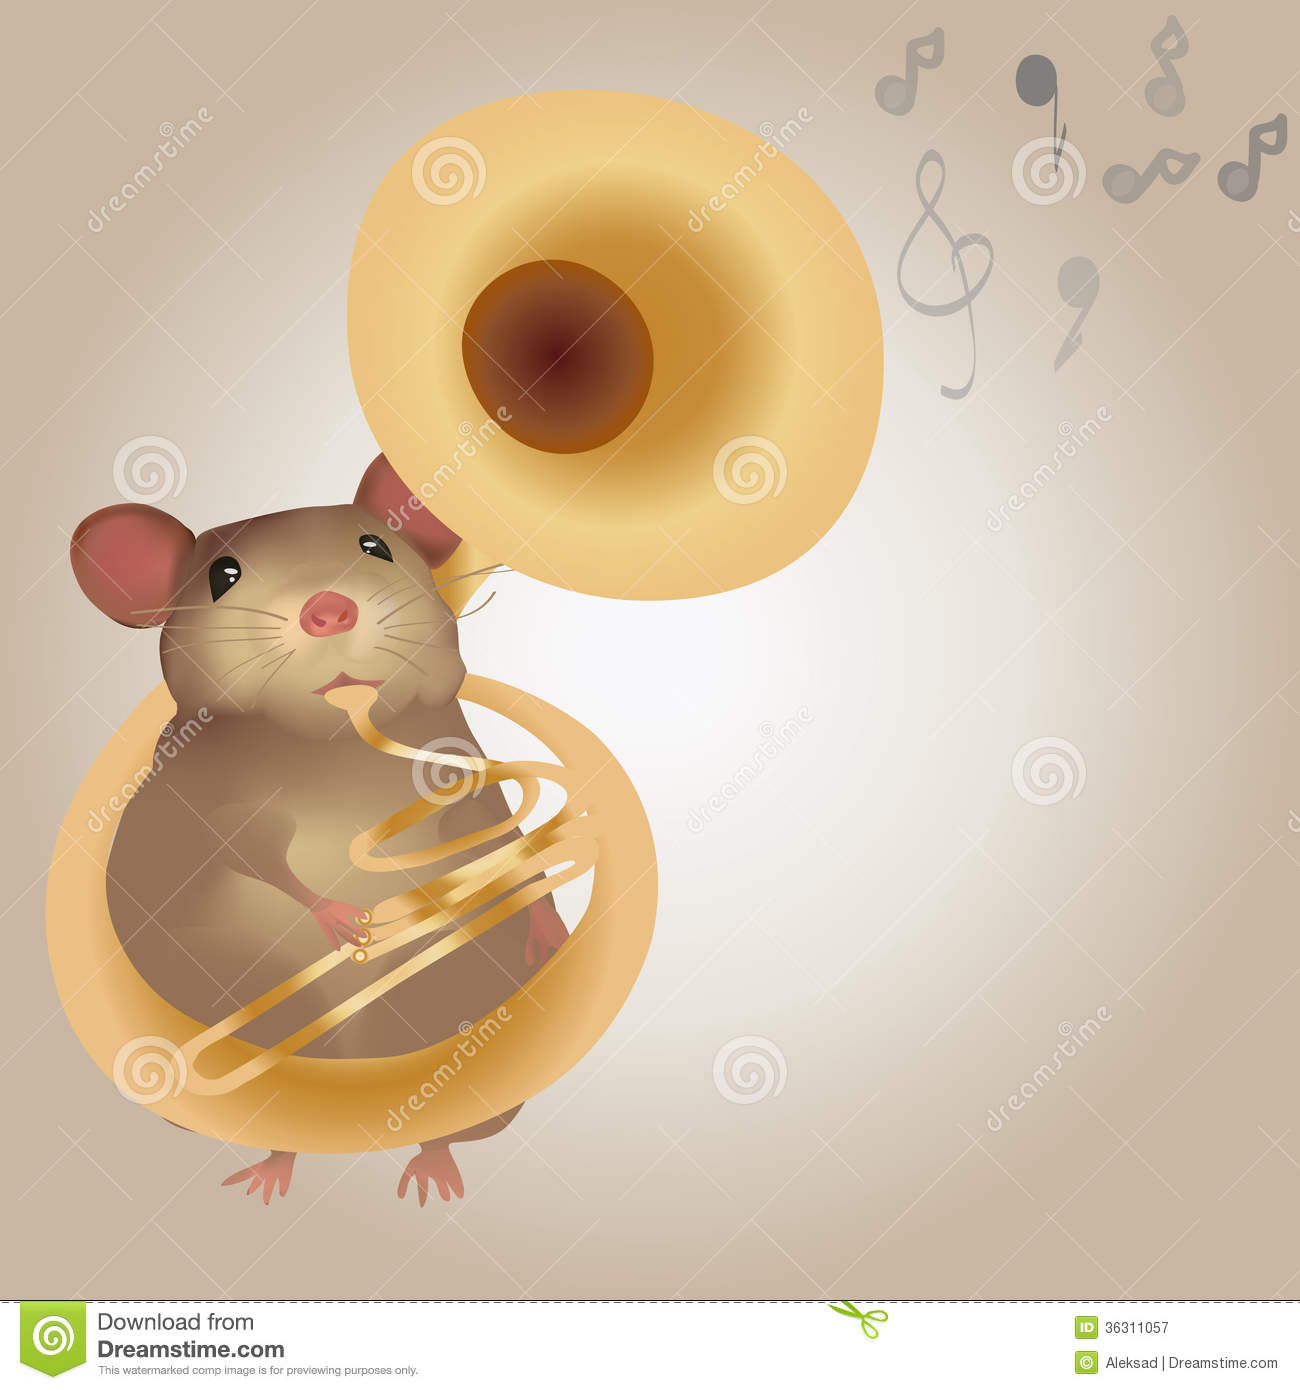 Illustration Of A Mouse Playing On Tuba Royalty Free Stock Photography ...